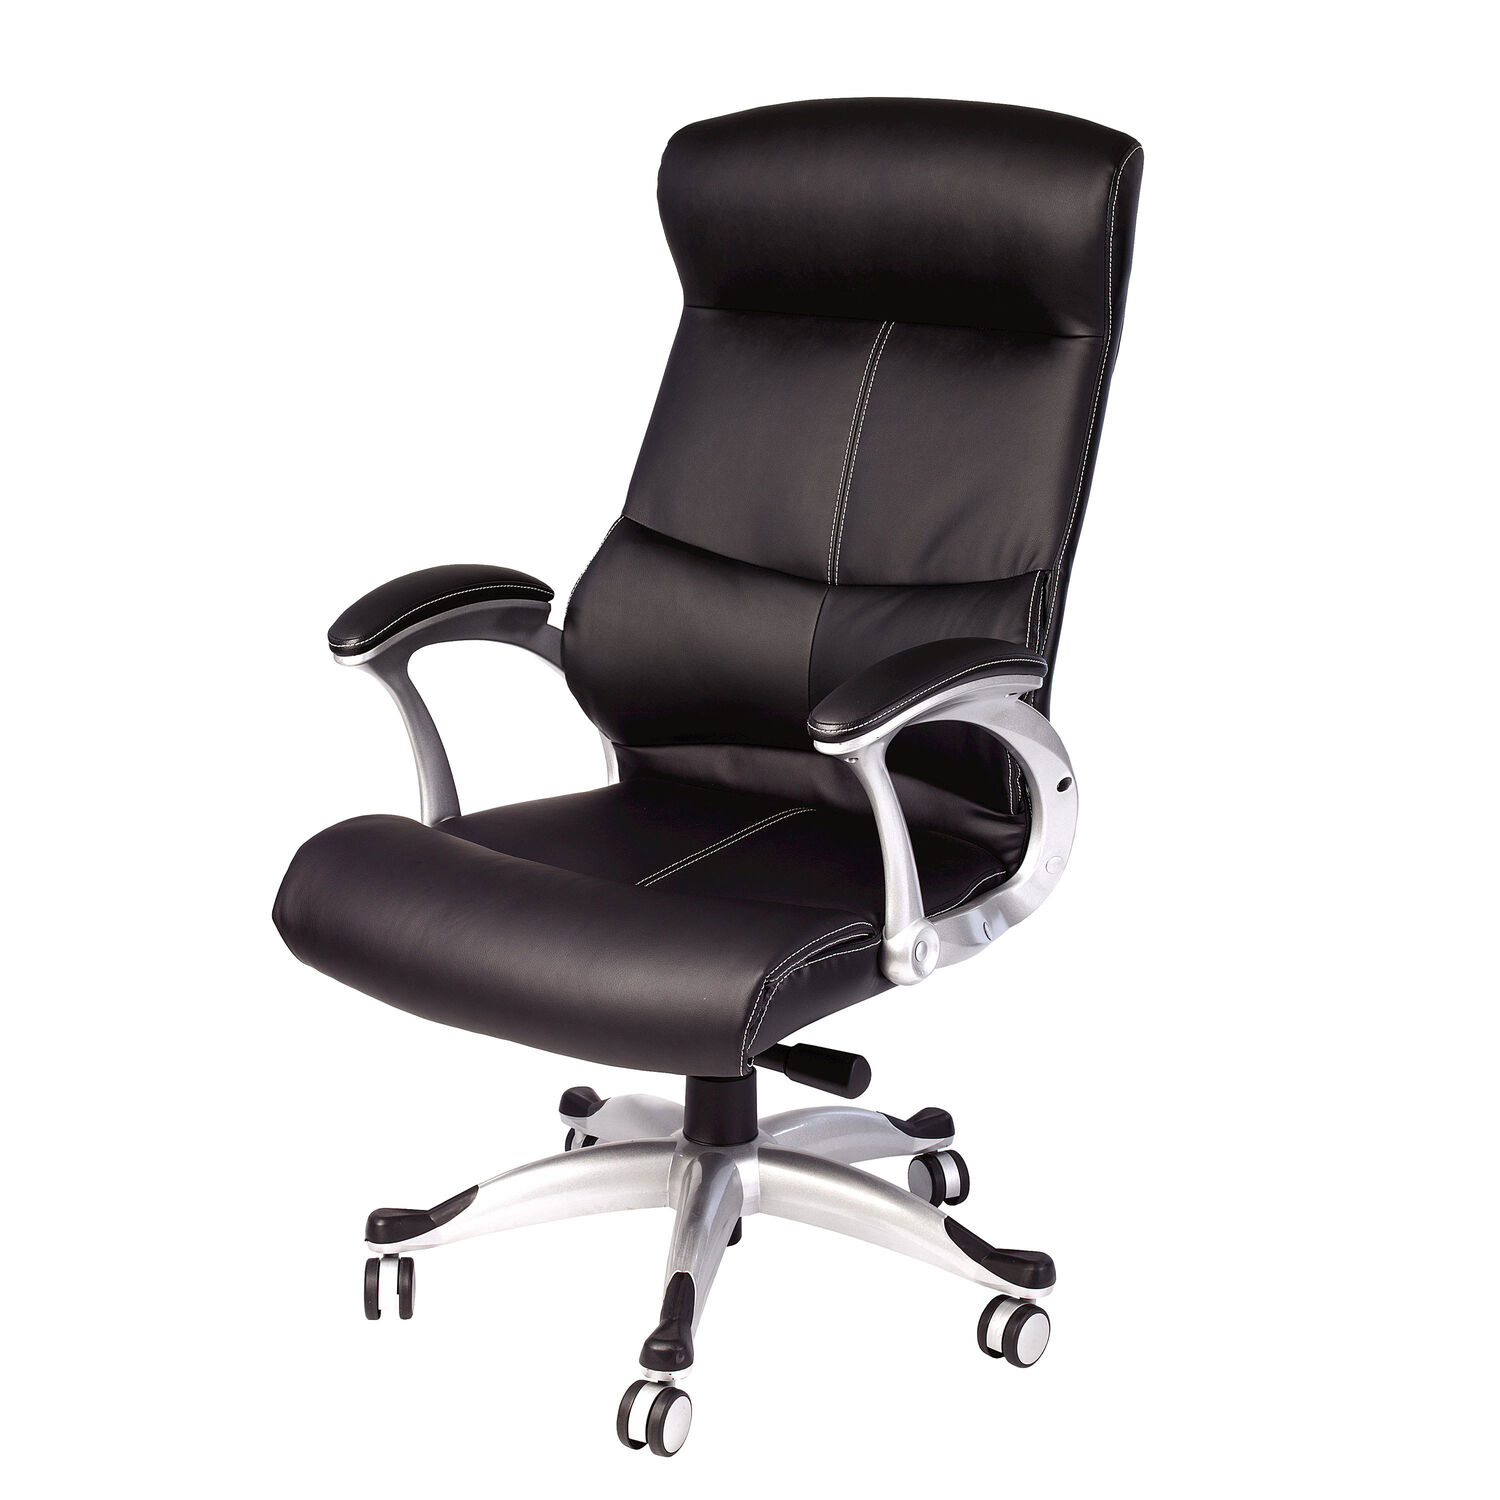 office leather chair. Samsonite Singapore Premium Bonded Leather Chair In The Color Black. Office